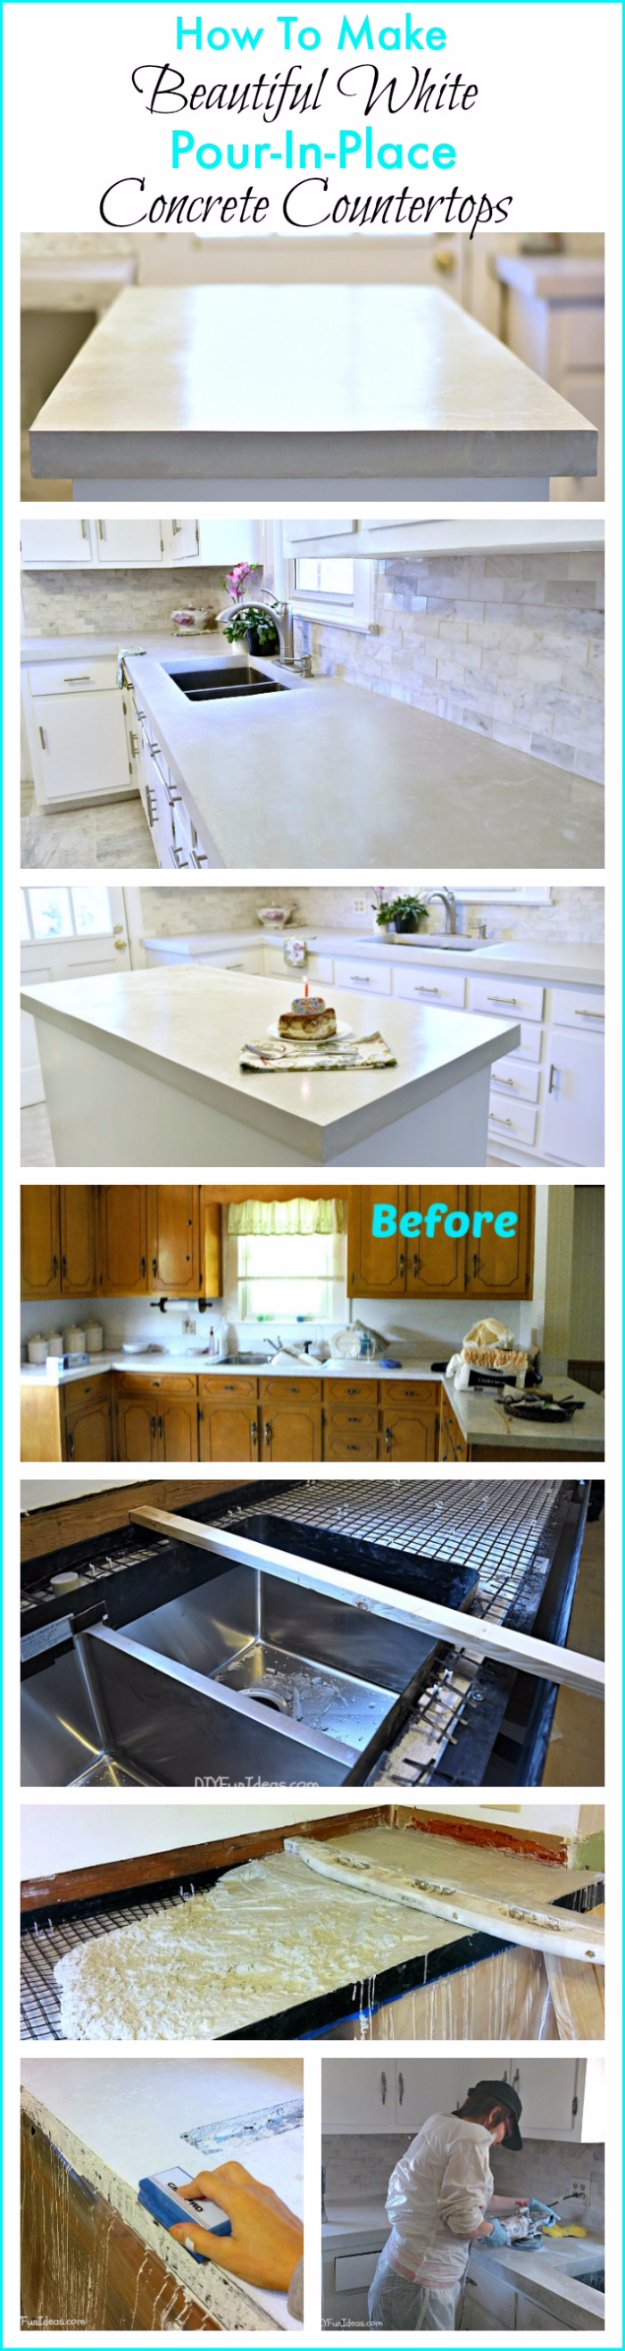 how to build kitchen cabinets in place 37 brilliant diy kitchen makeover ideas 9306